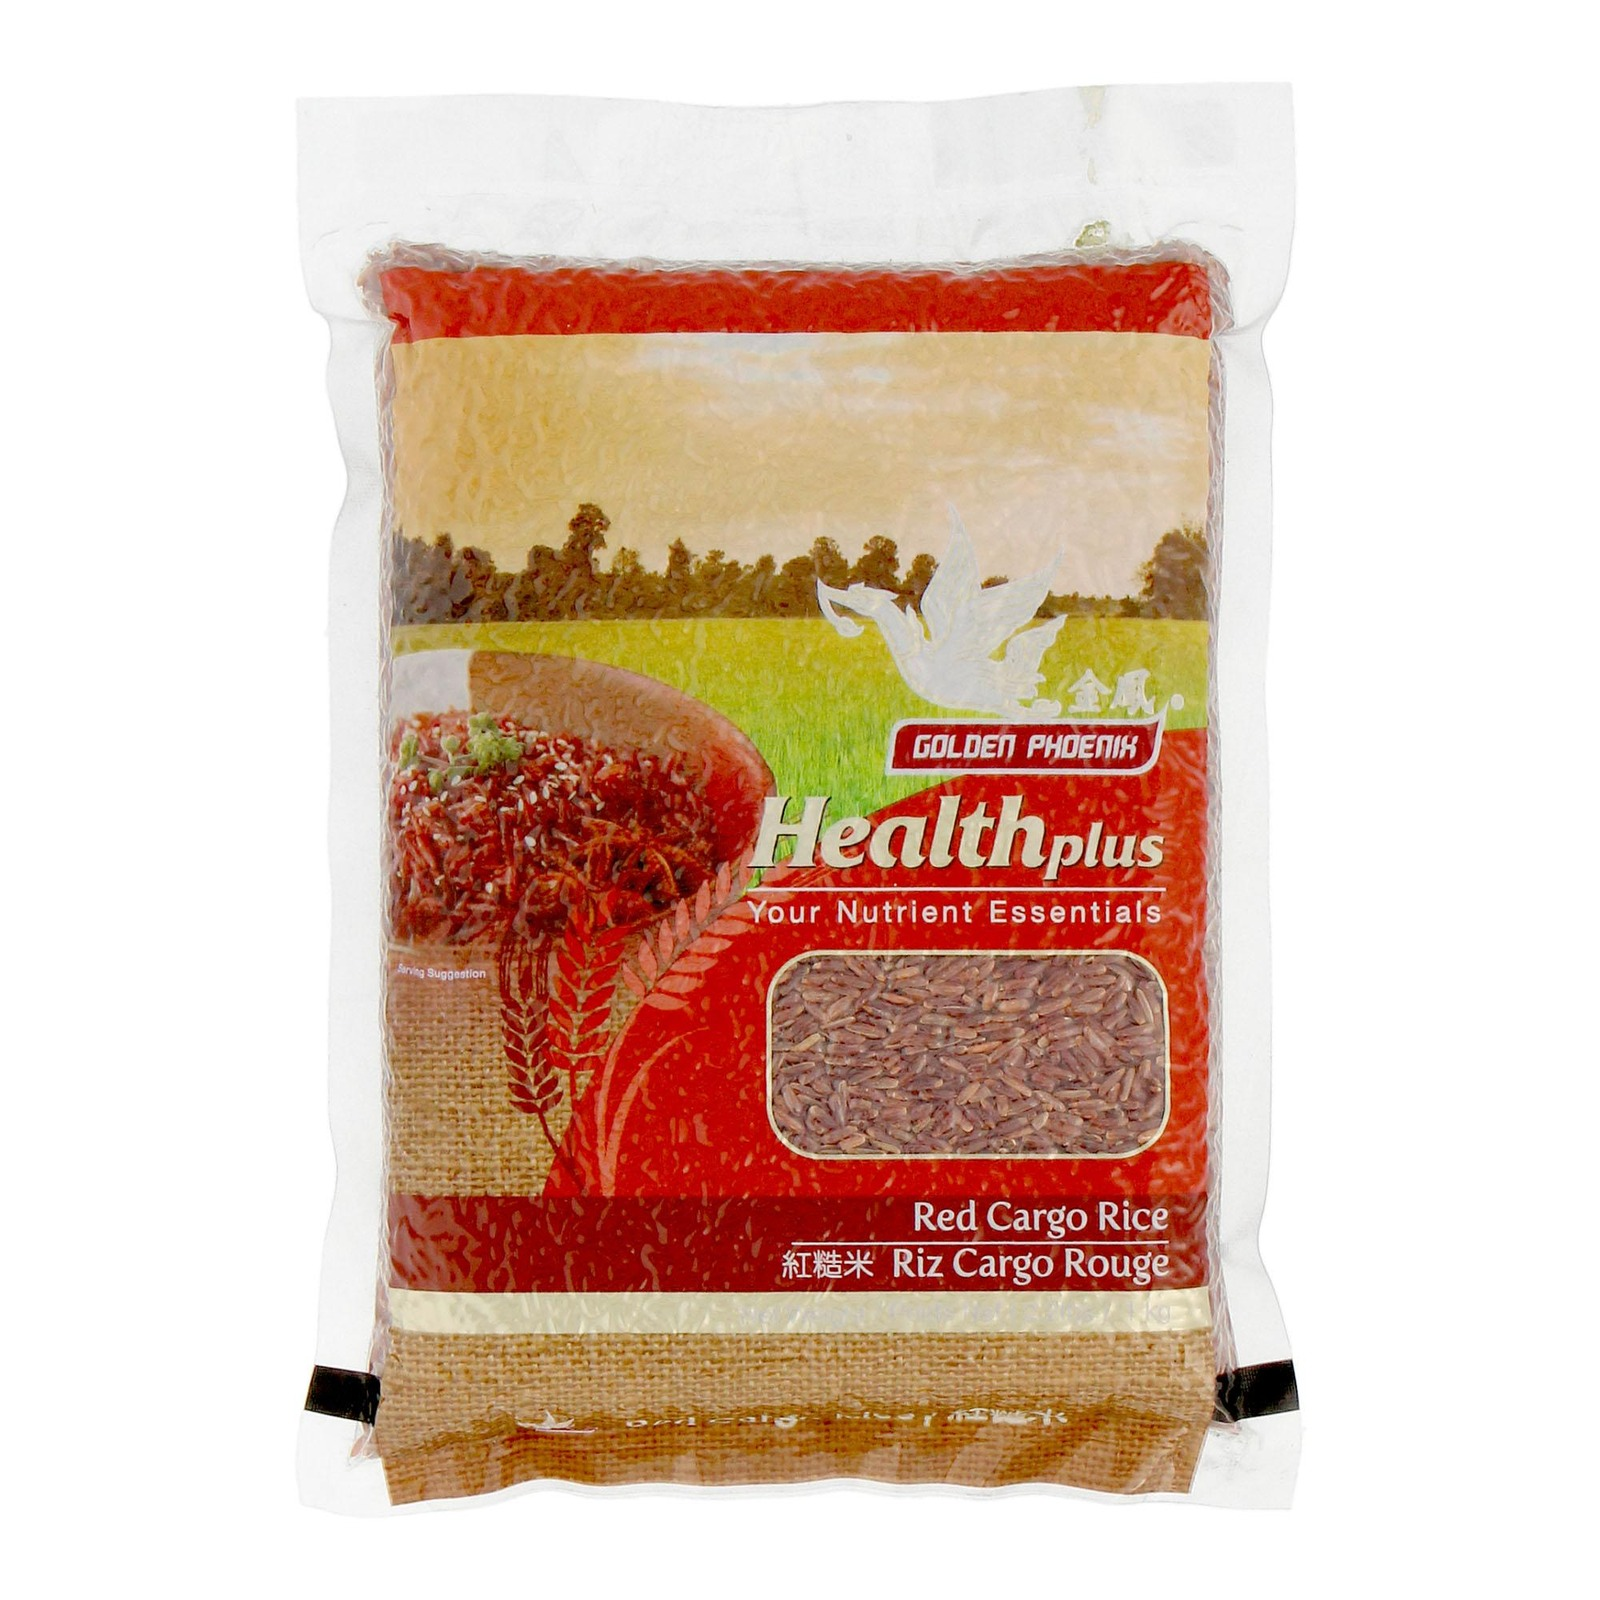 Golden Phoenix Healthplus Red Cargo Rice